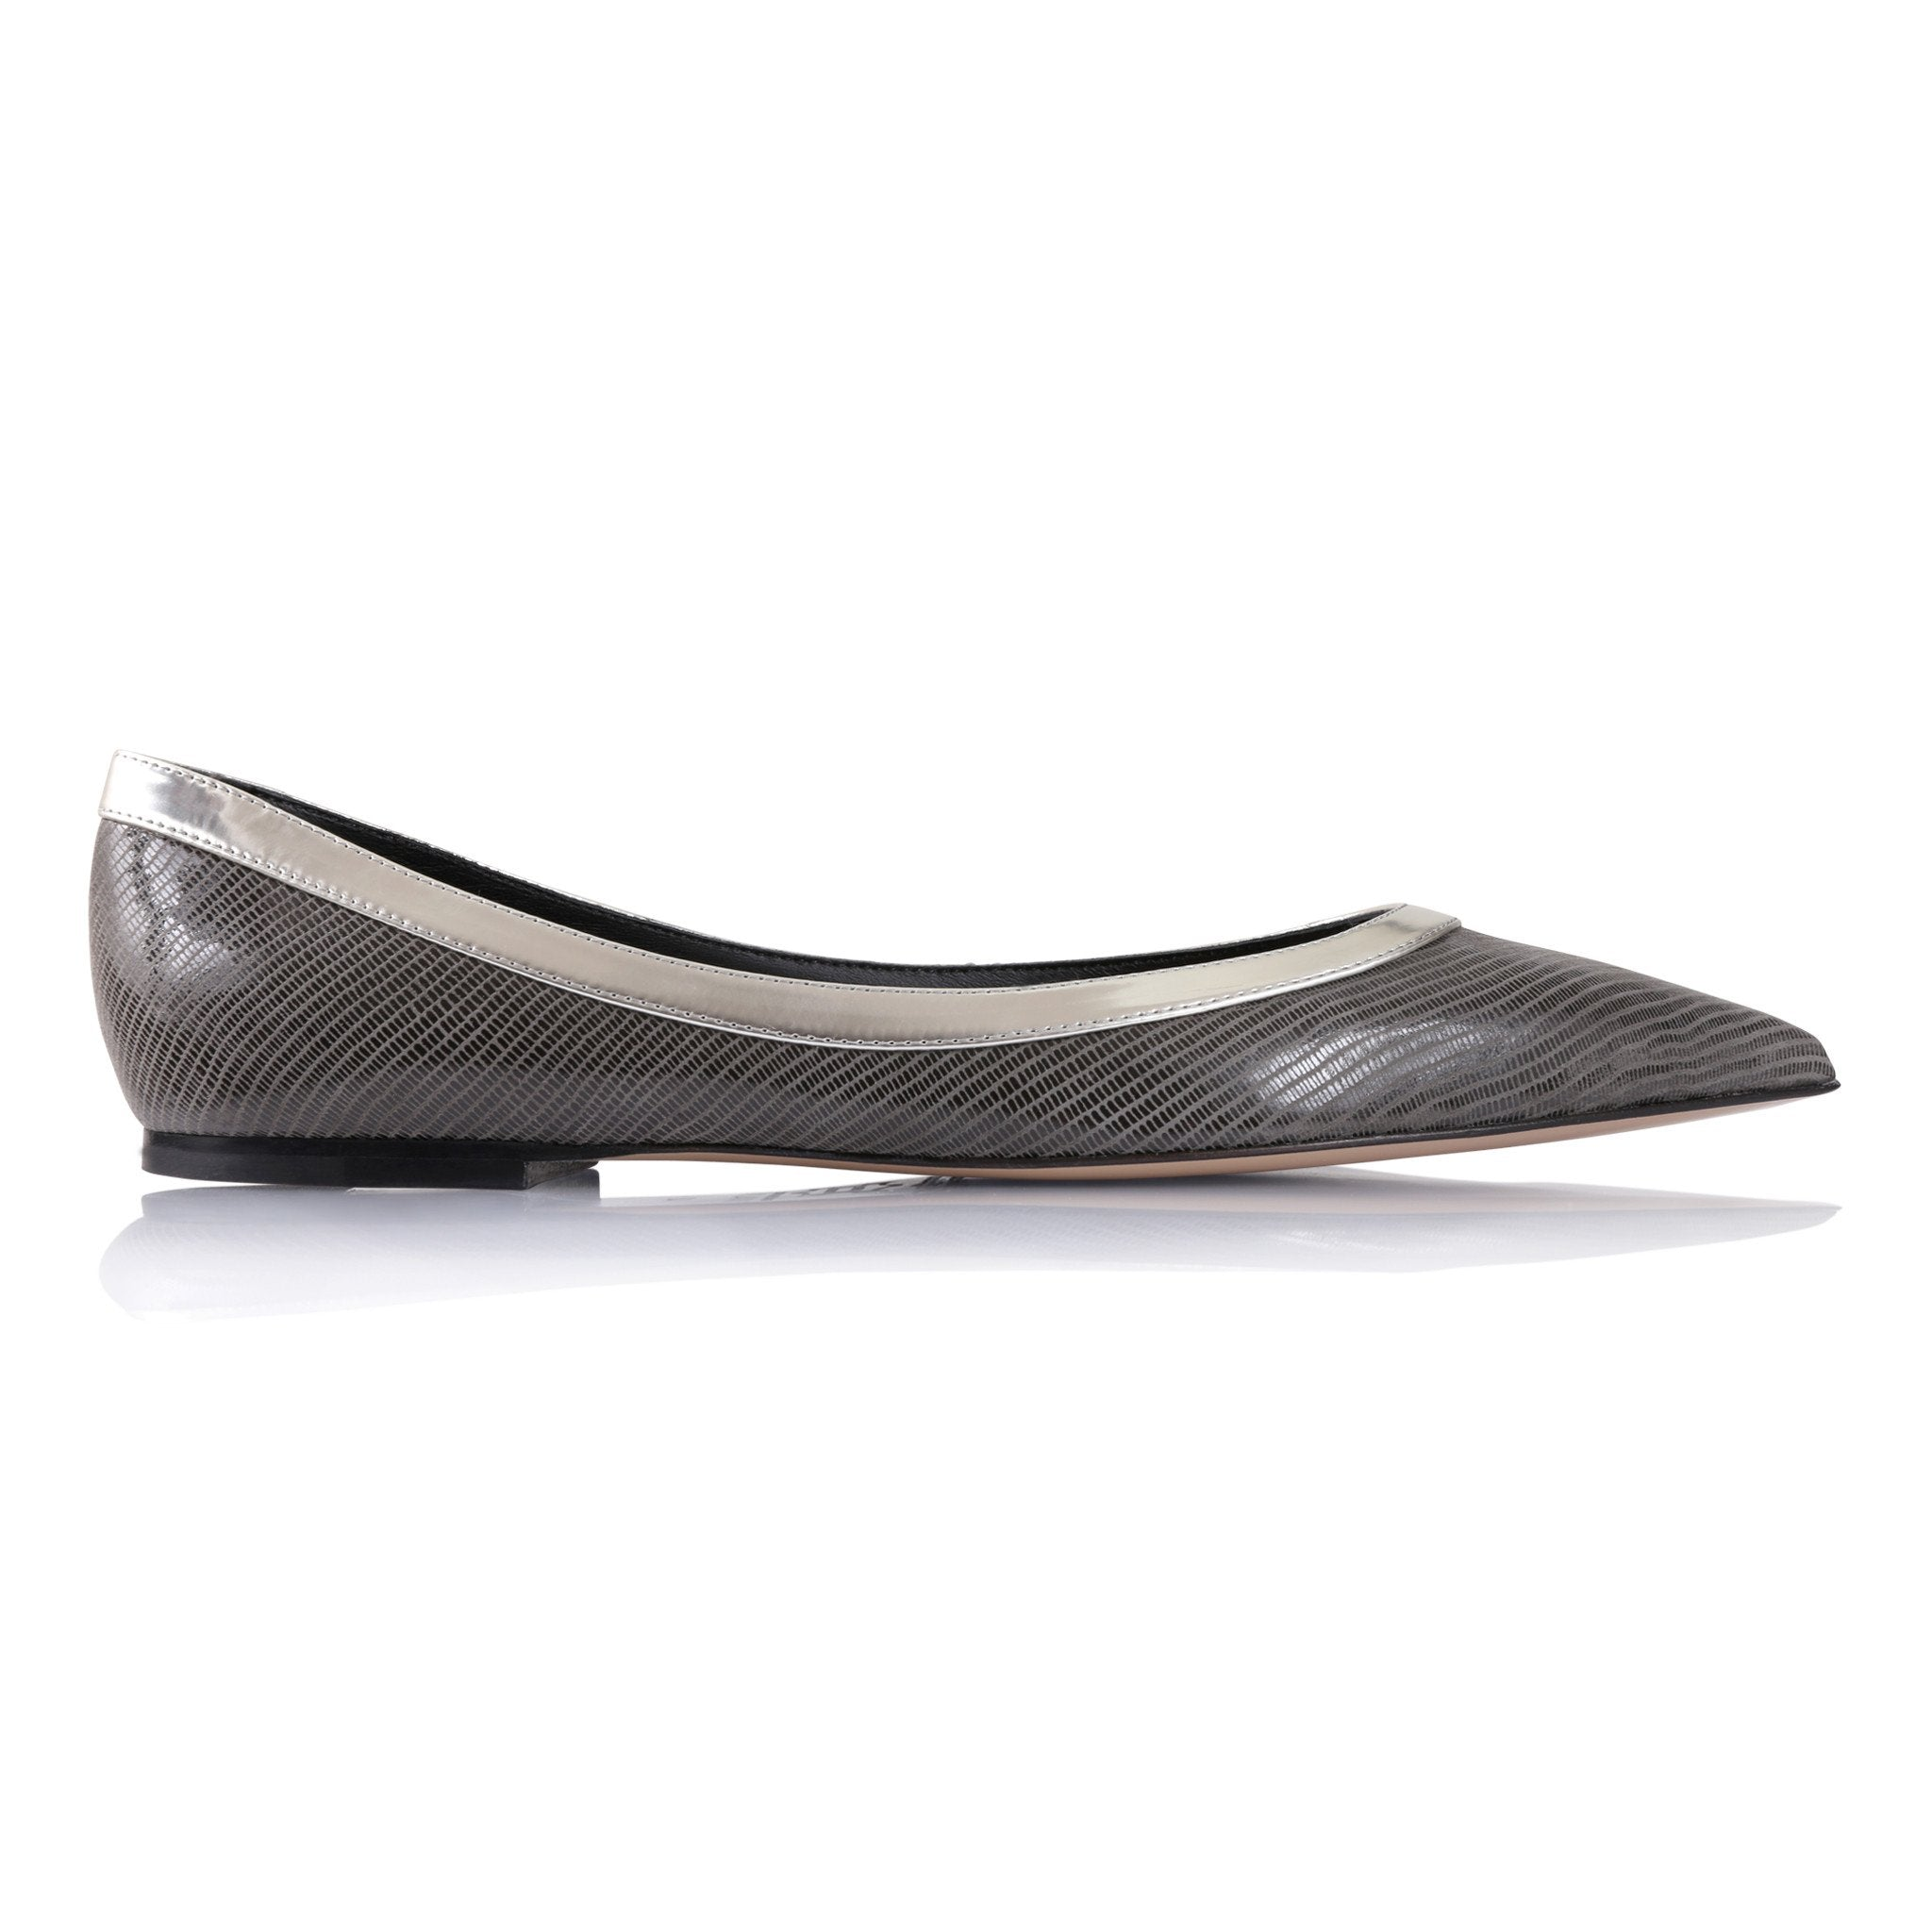 MILANO - Varanus Anthracite + Metallic Argento, VIAJIYU - Women's Hand Made Sustainable Luxury Shoes. Made in Italy. Made to Order.